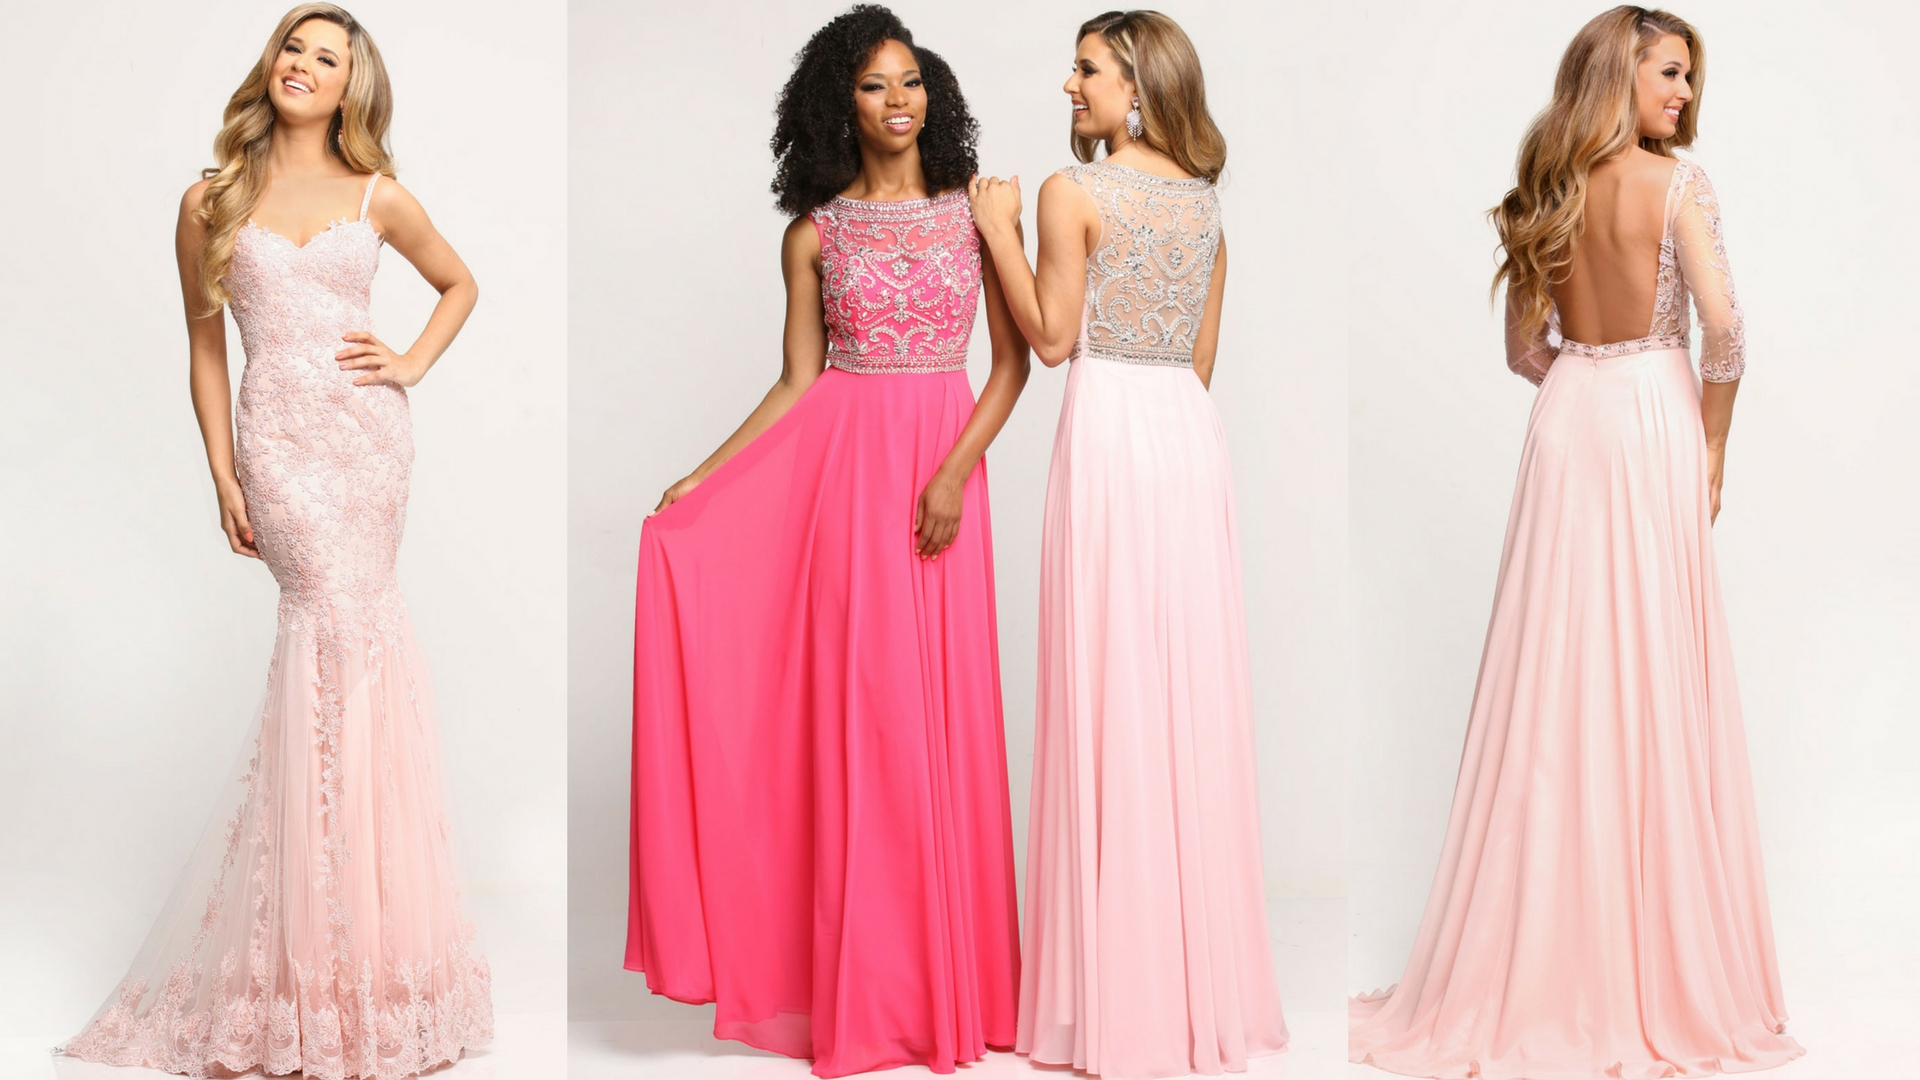 Pretty in Pink: 7 Fun Frocks for Prom 2017 - Sparkle Prom blog